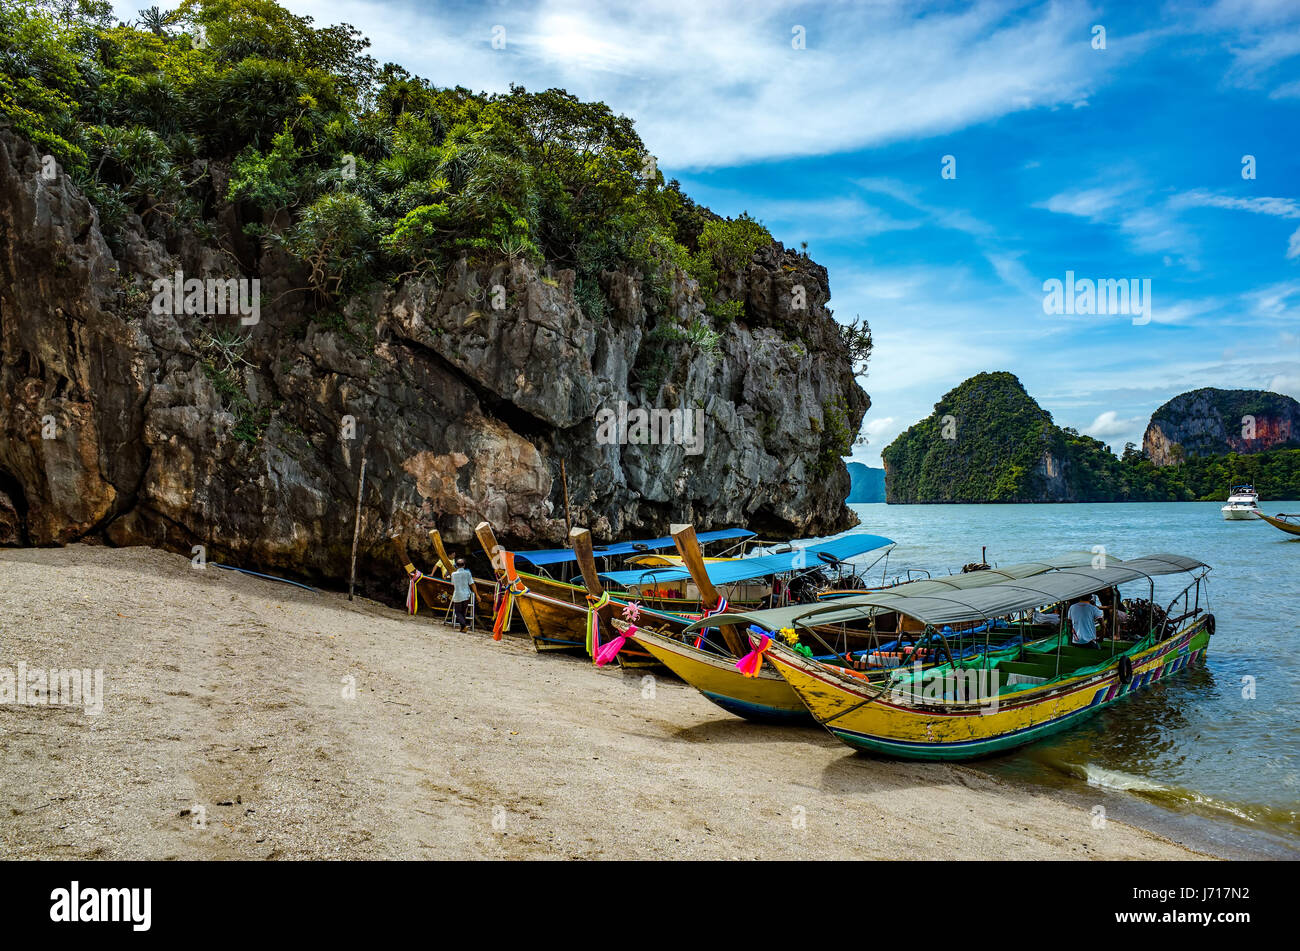 Boats on the beach of Phuket, Thailand - Stock Image